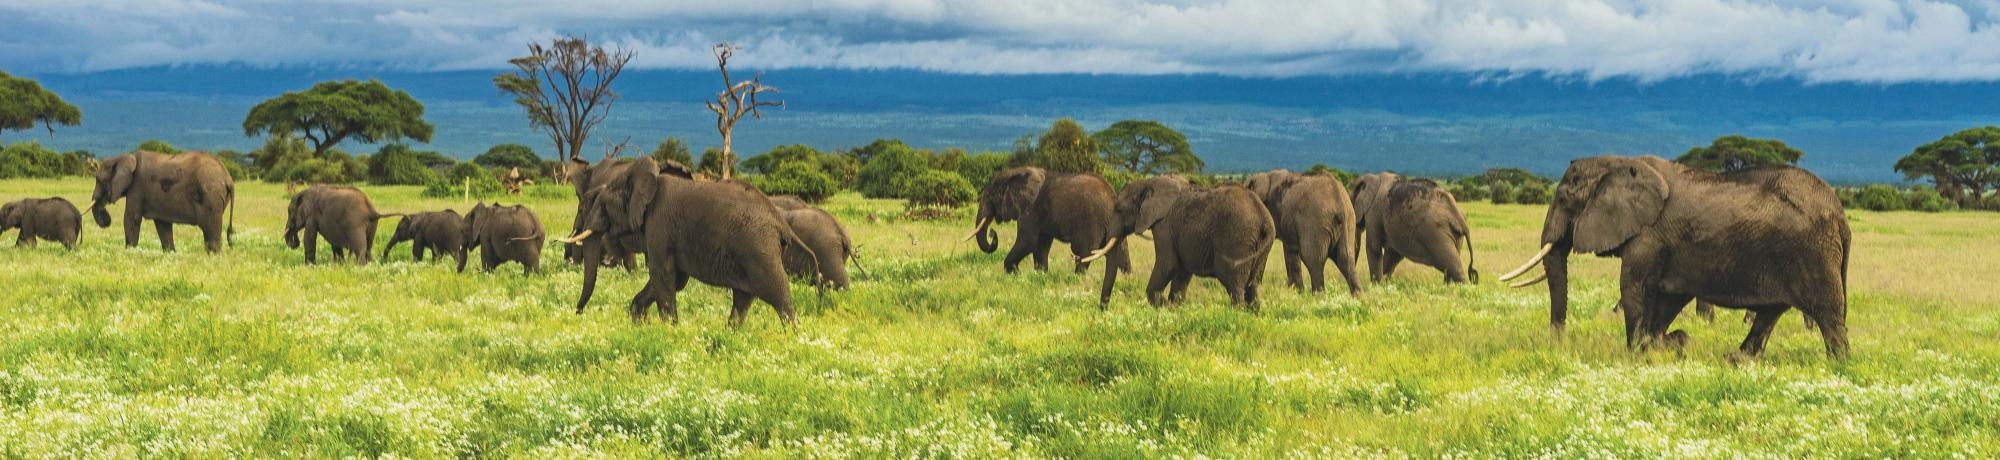 UC Davis Study Abroad, Summer Abroad Africa, Maasailand, East Africa: Cultural Immersion, Wildlife Conservation, and Community Activism Program, Header Image, Overview Page